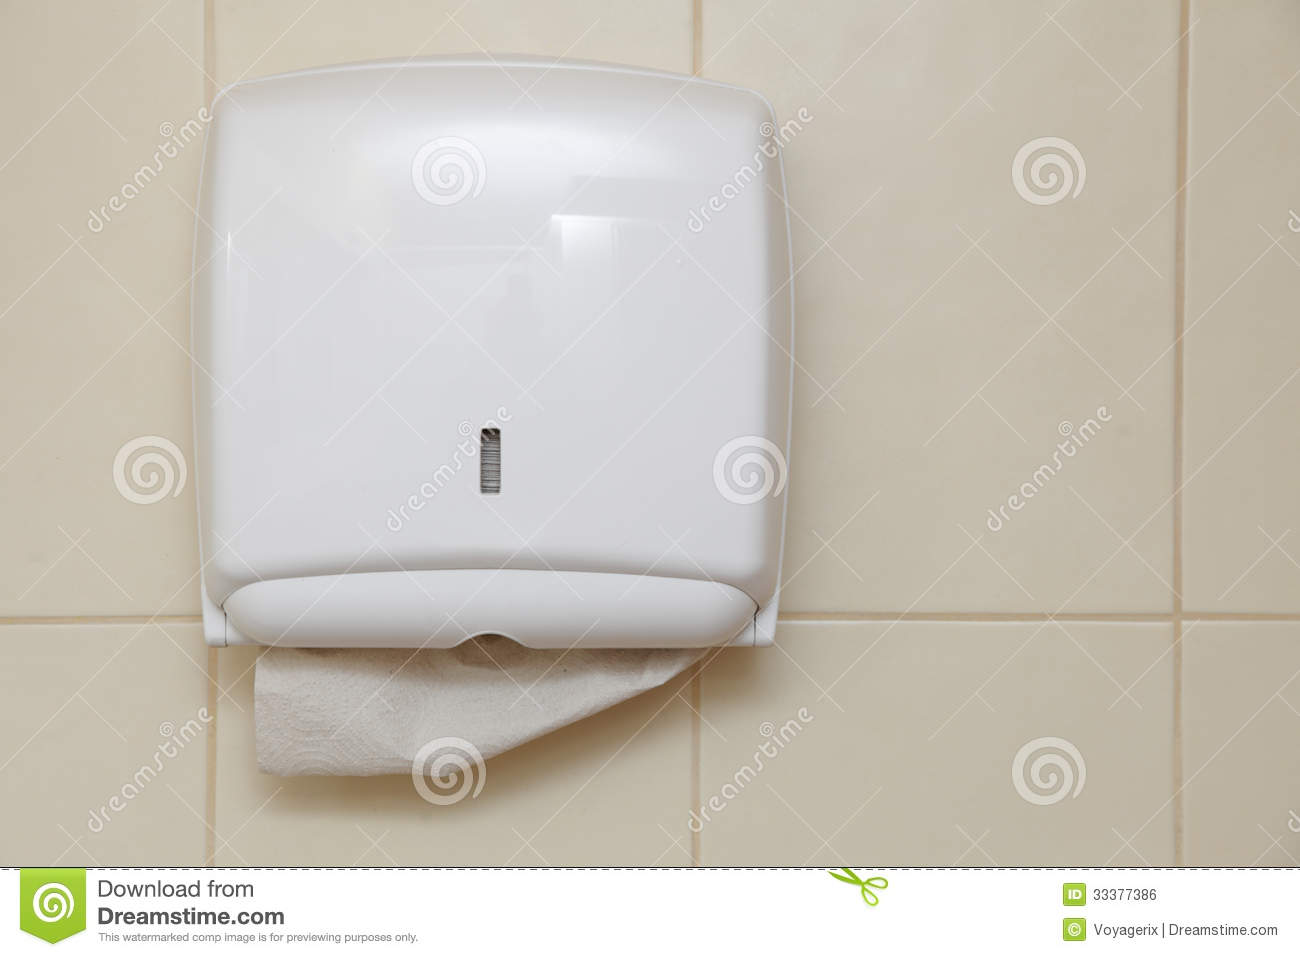 Paper Towel Dispenser In The Bathroom Royalty Free Stock Image Image 33377386